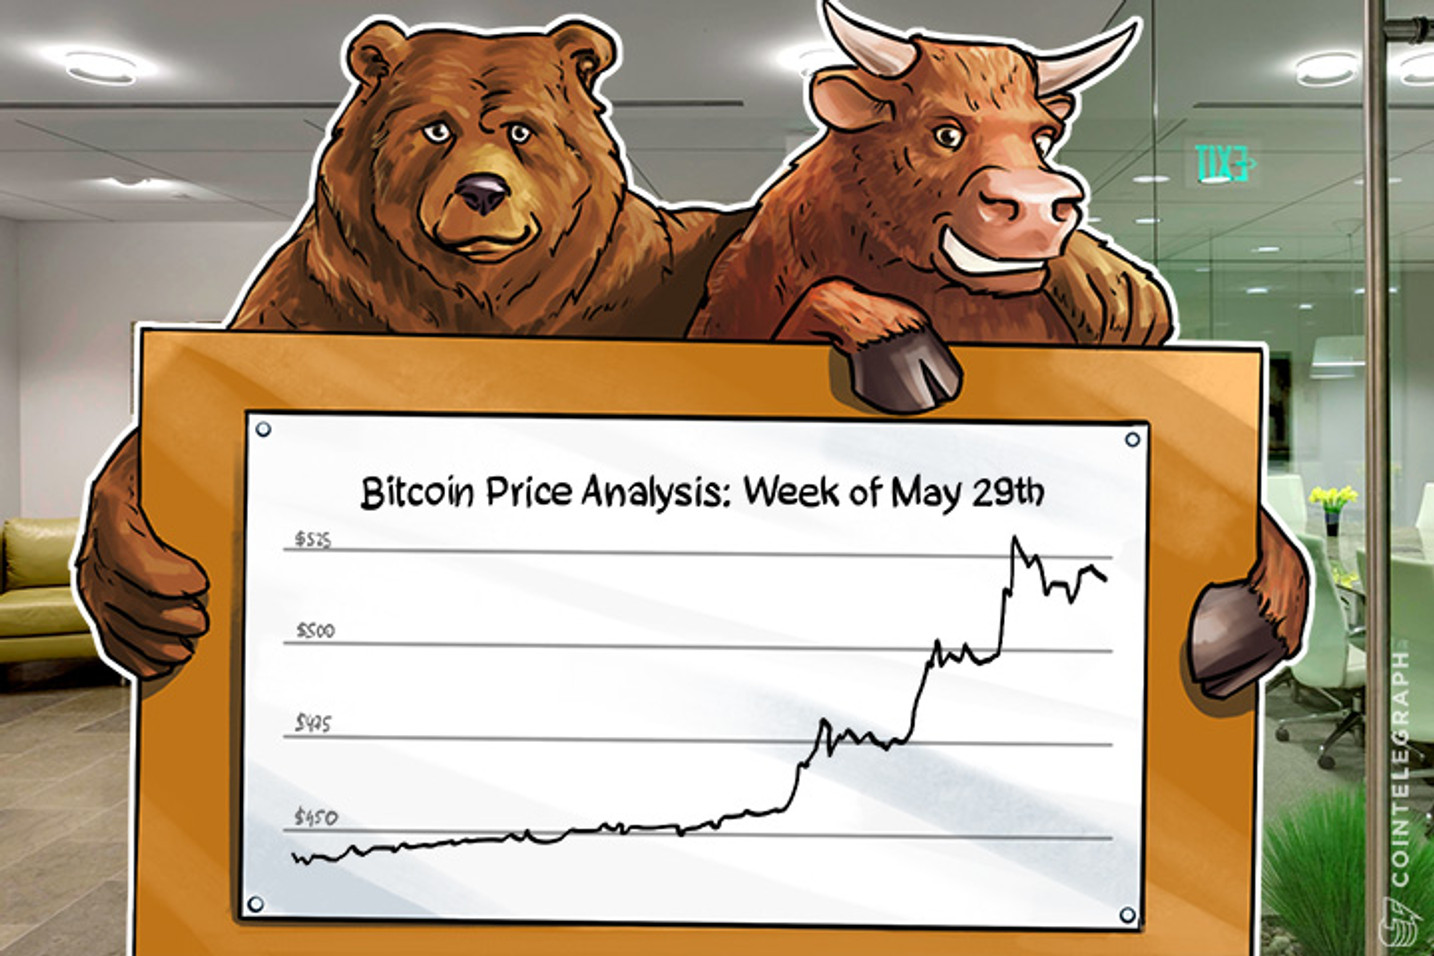 Bitcoin Price Analysis (Week of May 29th)